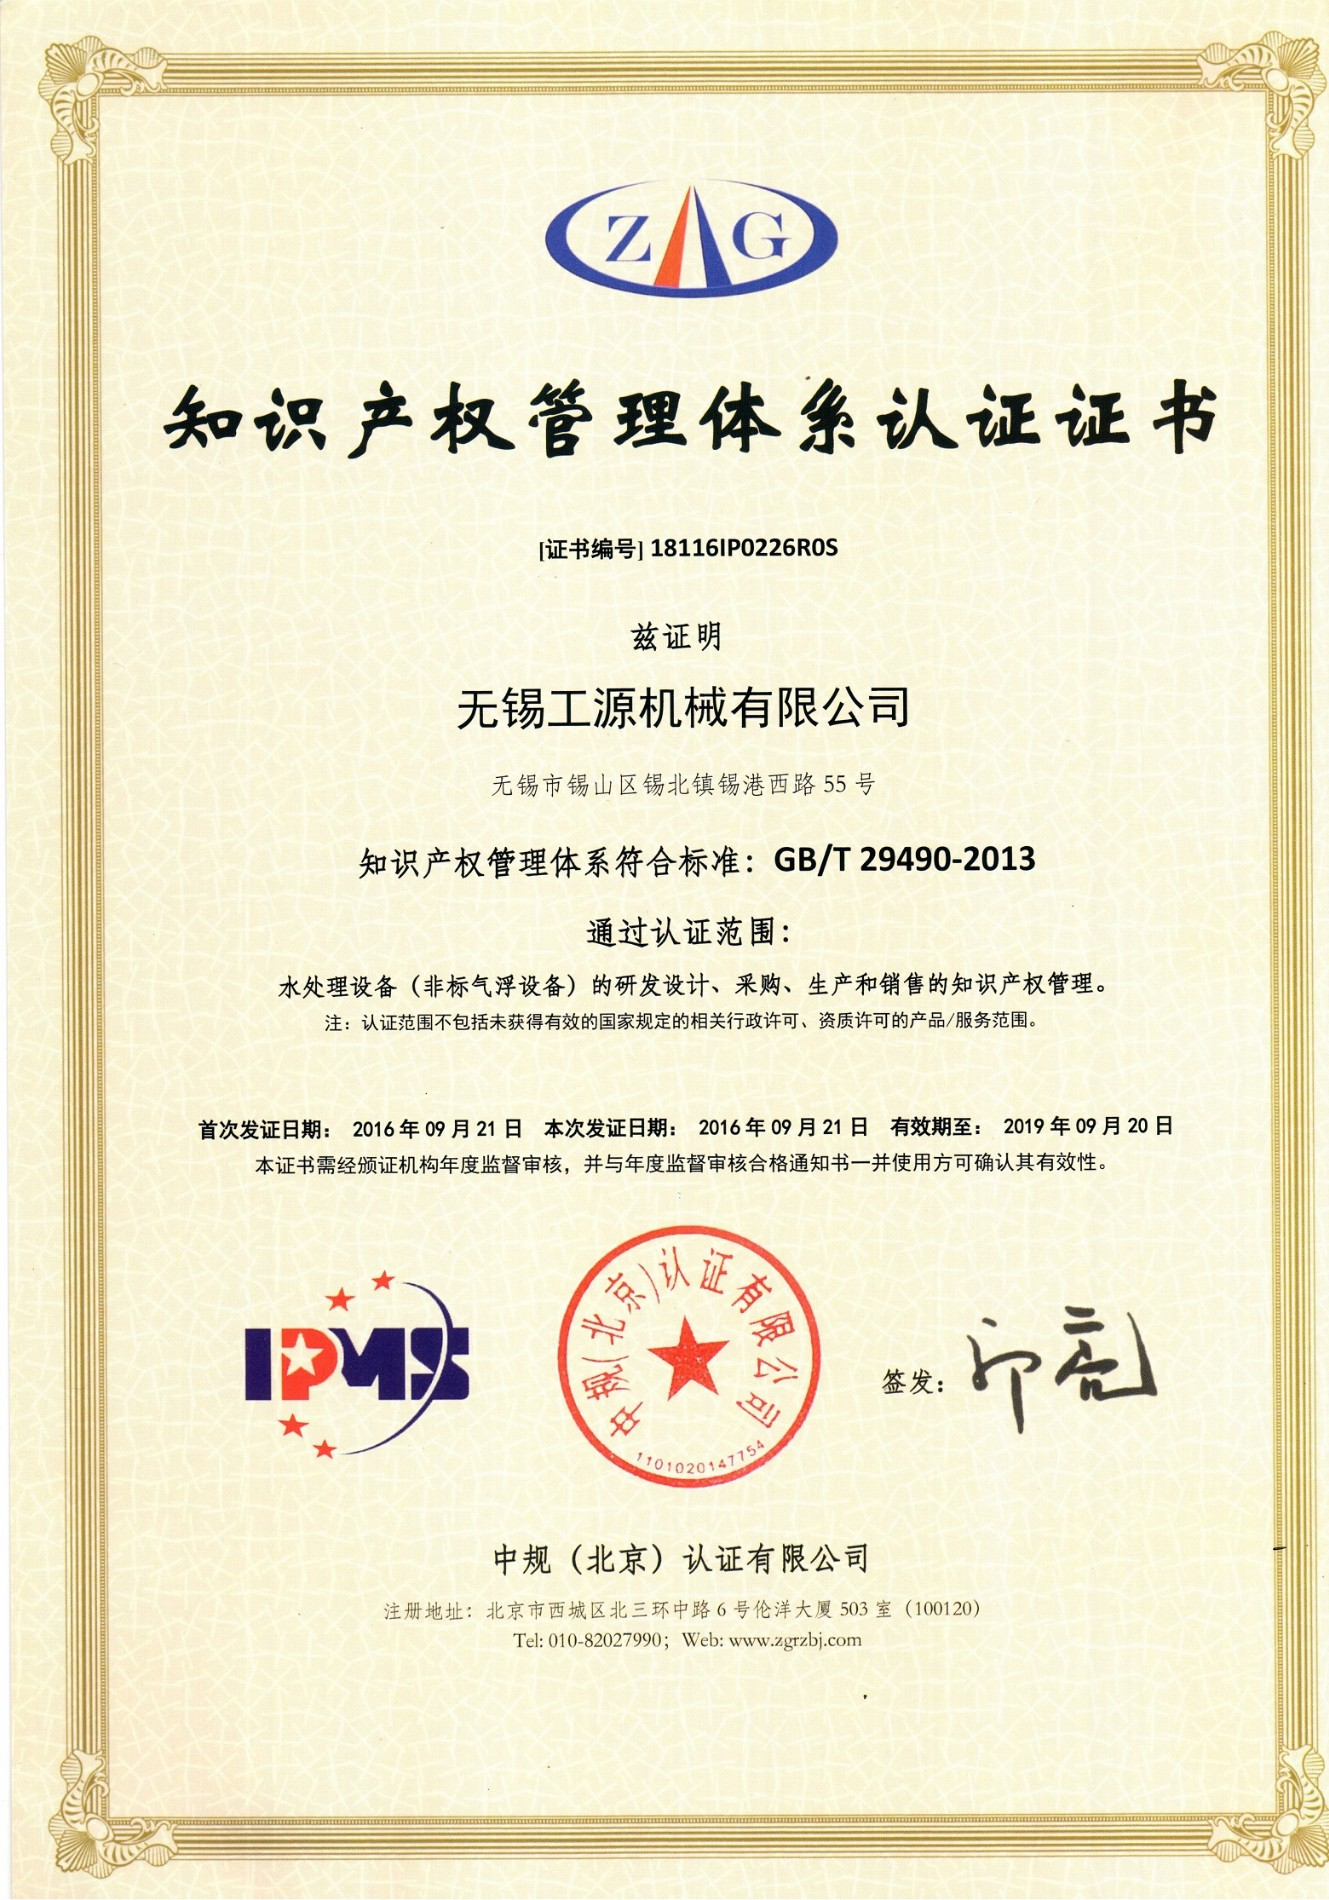 Intellectual property right certificate